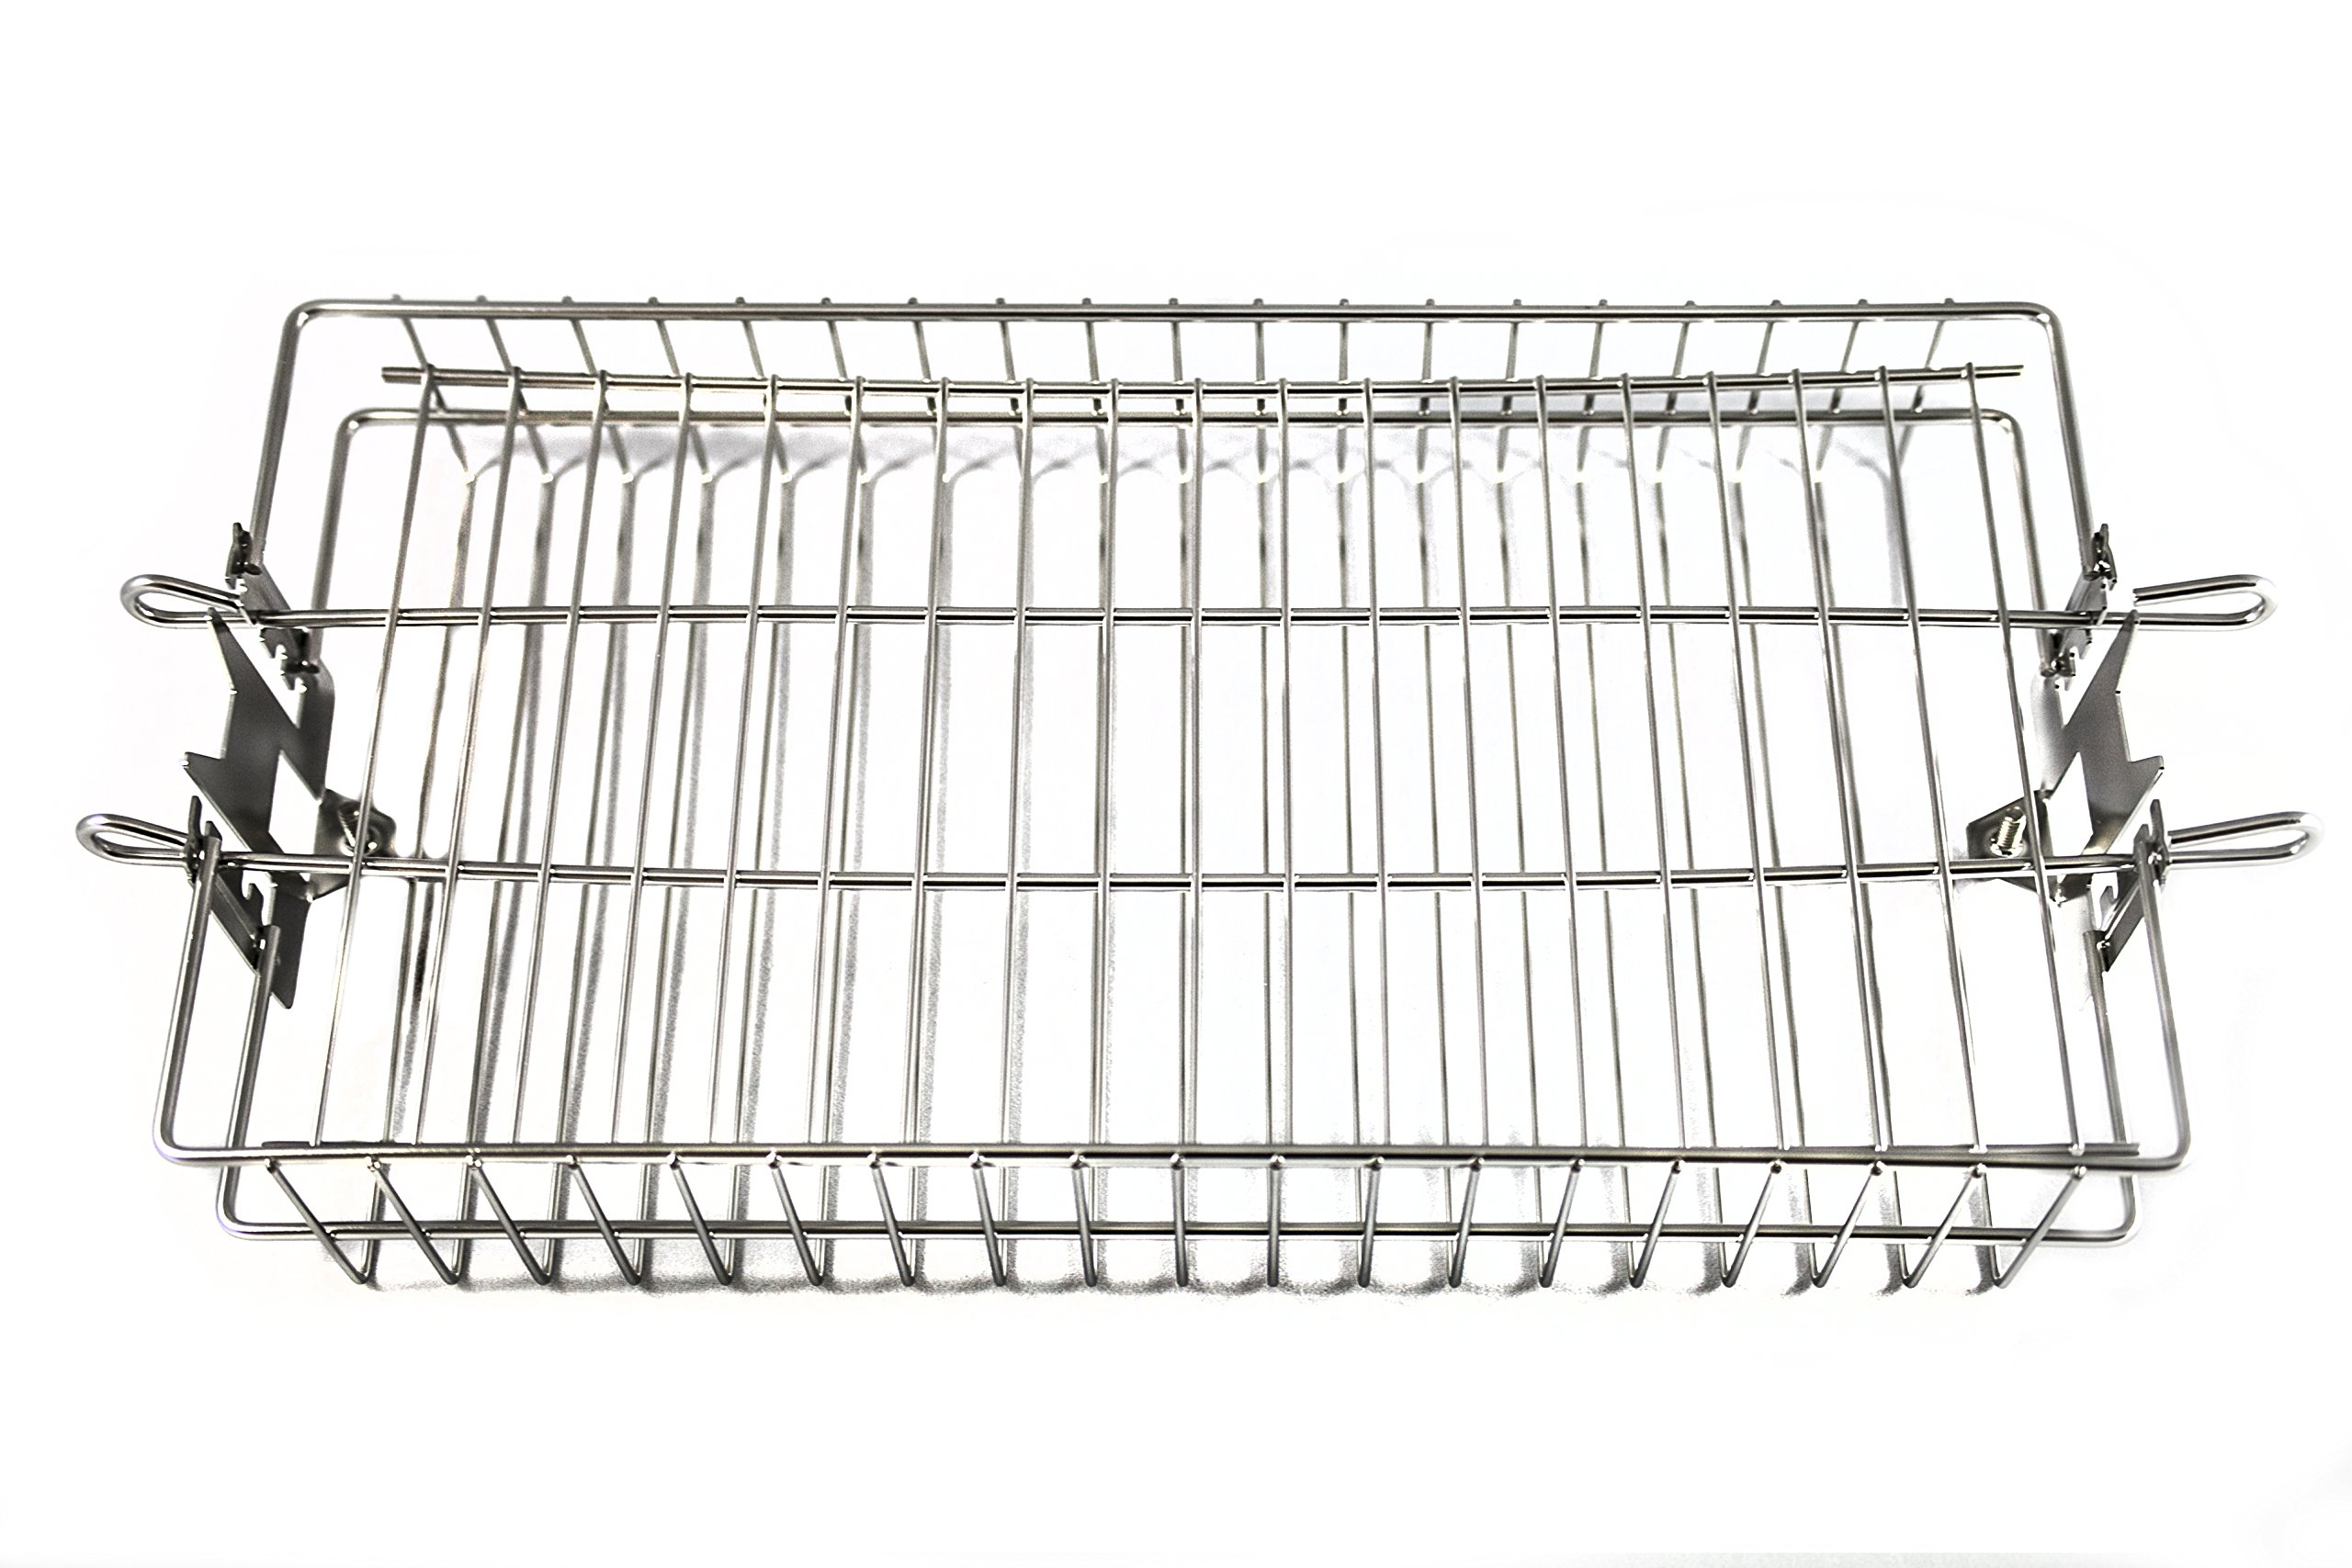 OneGrill Chrome Steel Universal Grill Rotisserie Spit Rod Flat Basket (Fits: 5/16'' Square, 3/8'' Square, 1/2'' Hexagon Spit Rods)